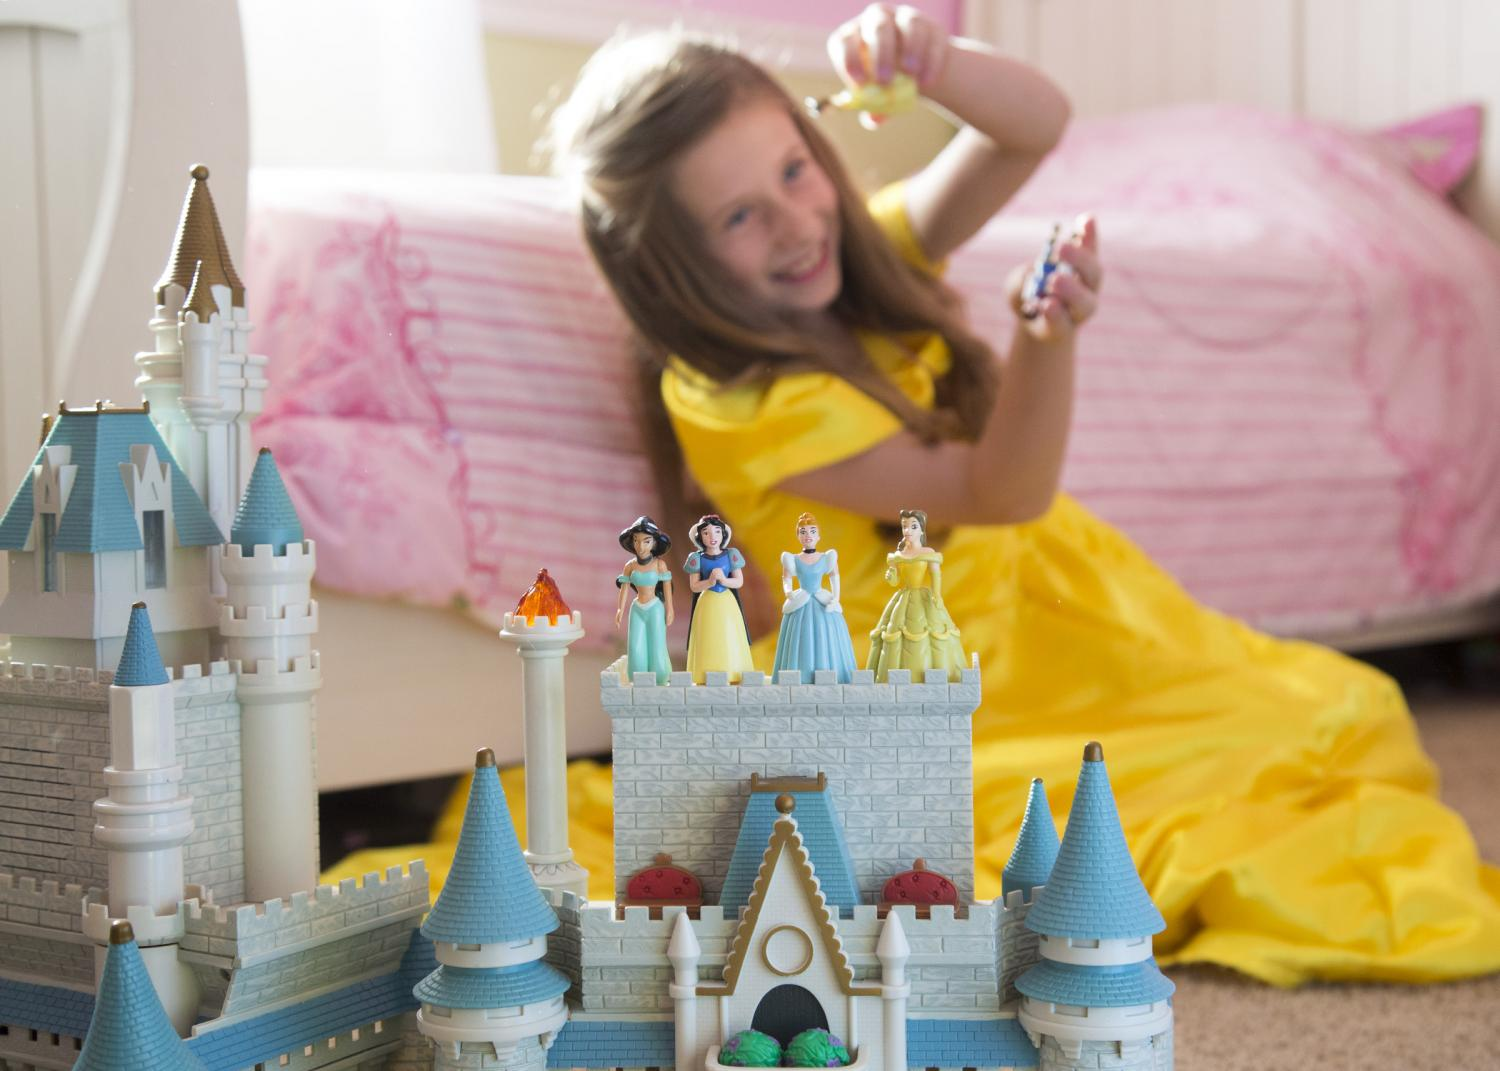 Here's More Evidence That Disney Princess Culture Harms Girls